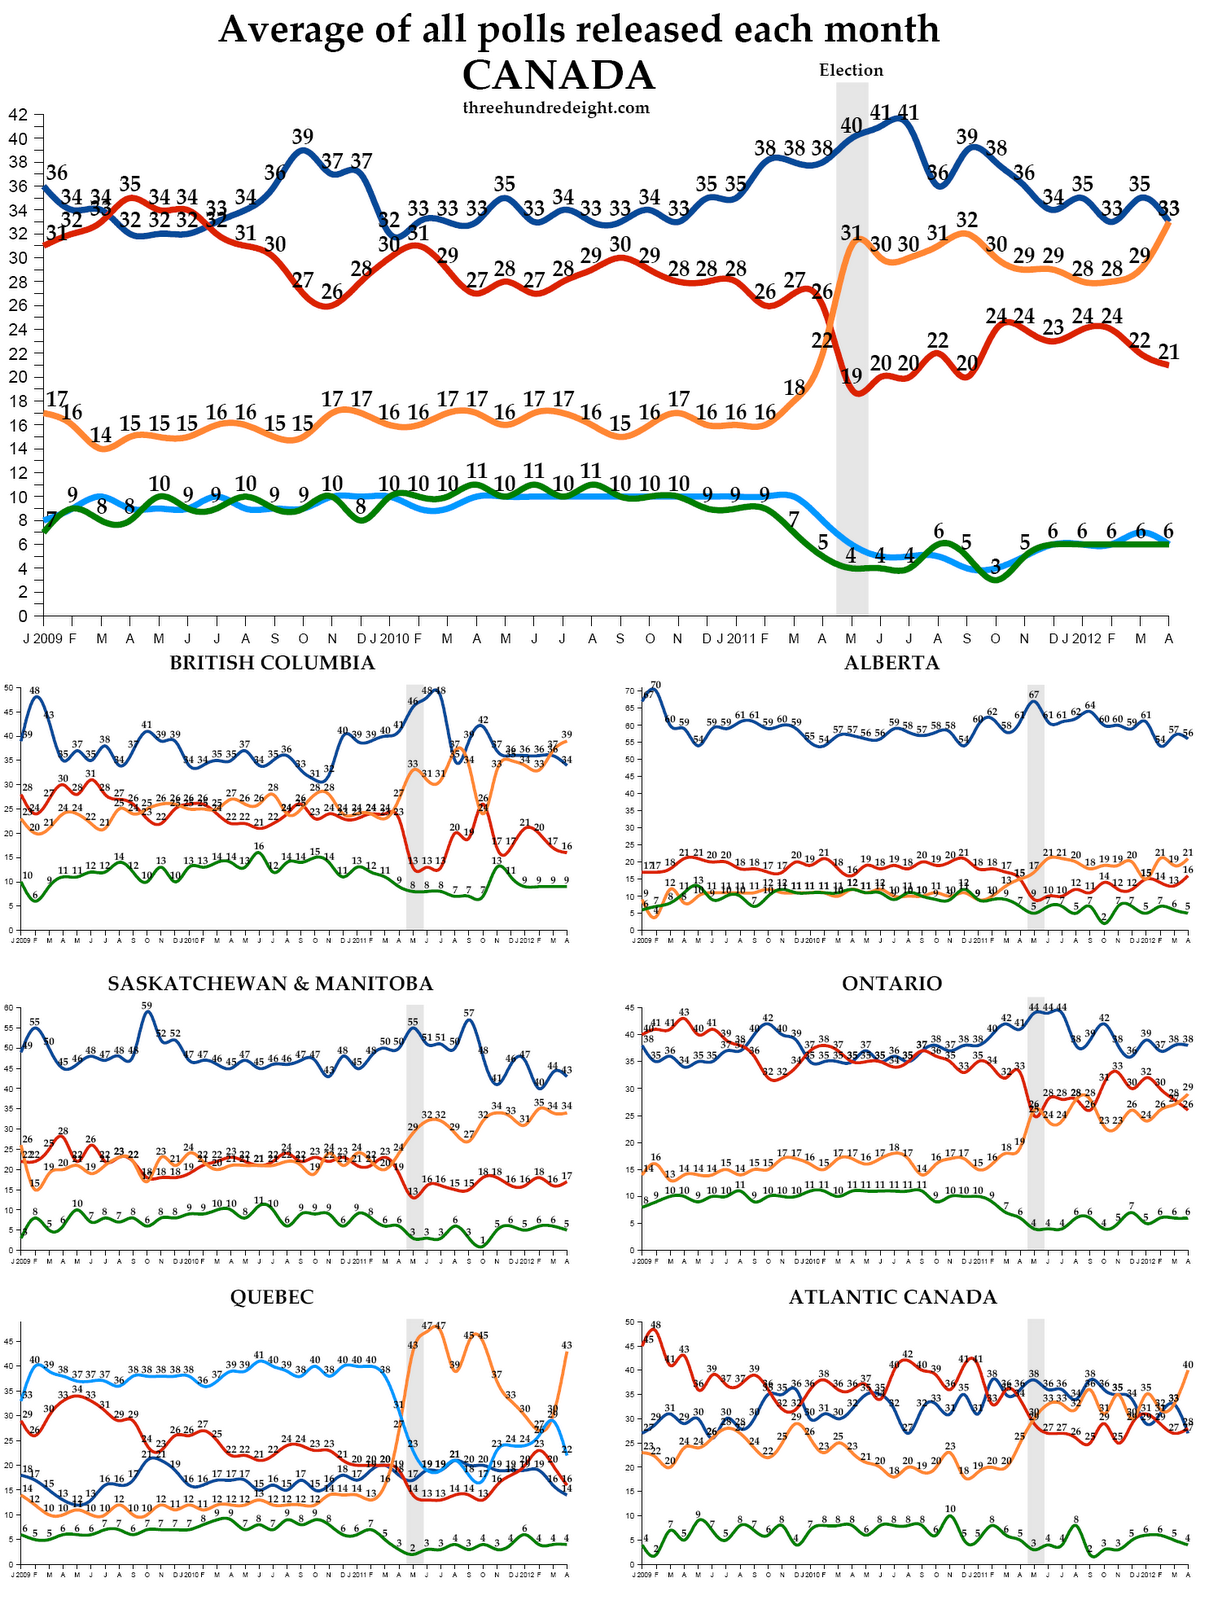 Canada Political Polls April 2012 Poll Avgs The Streams Have Crossed